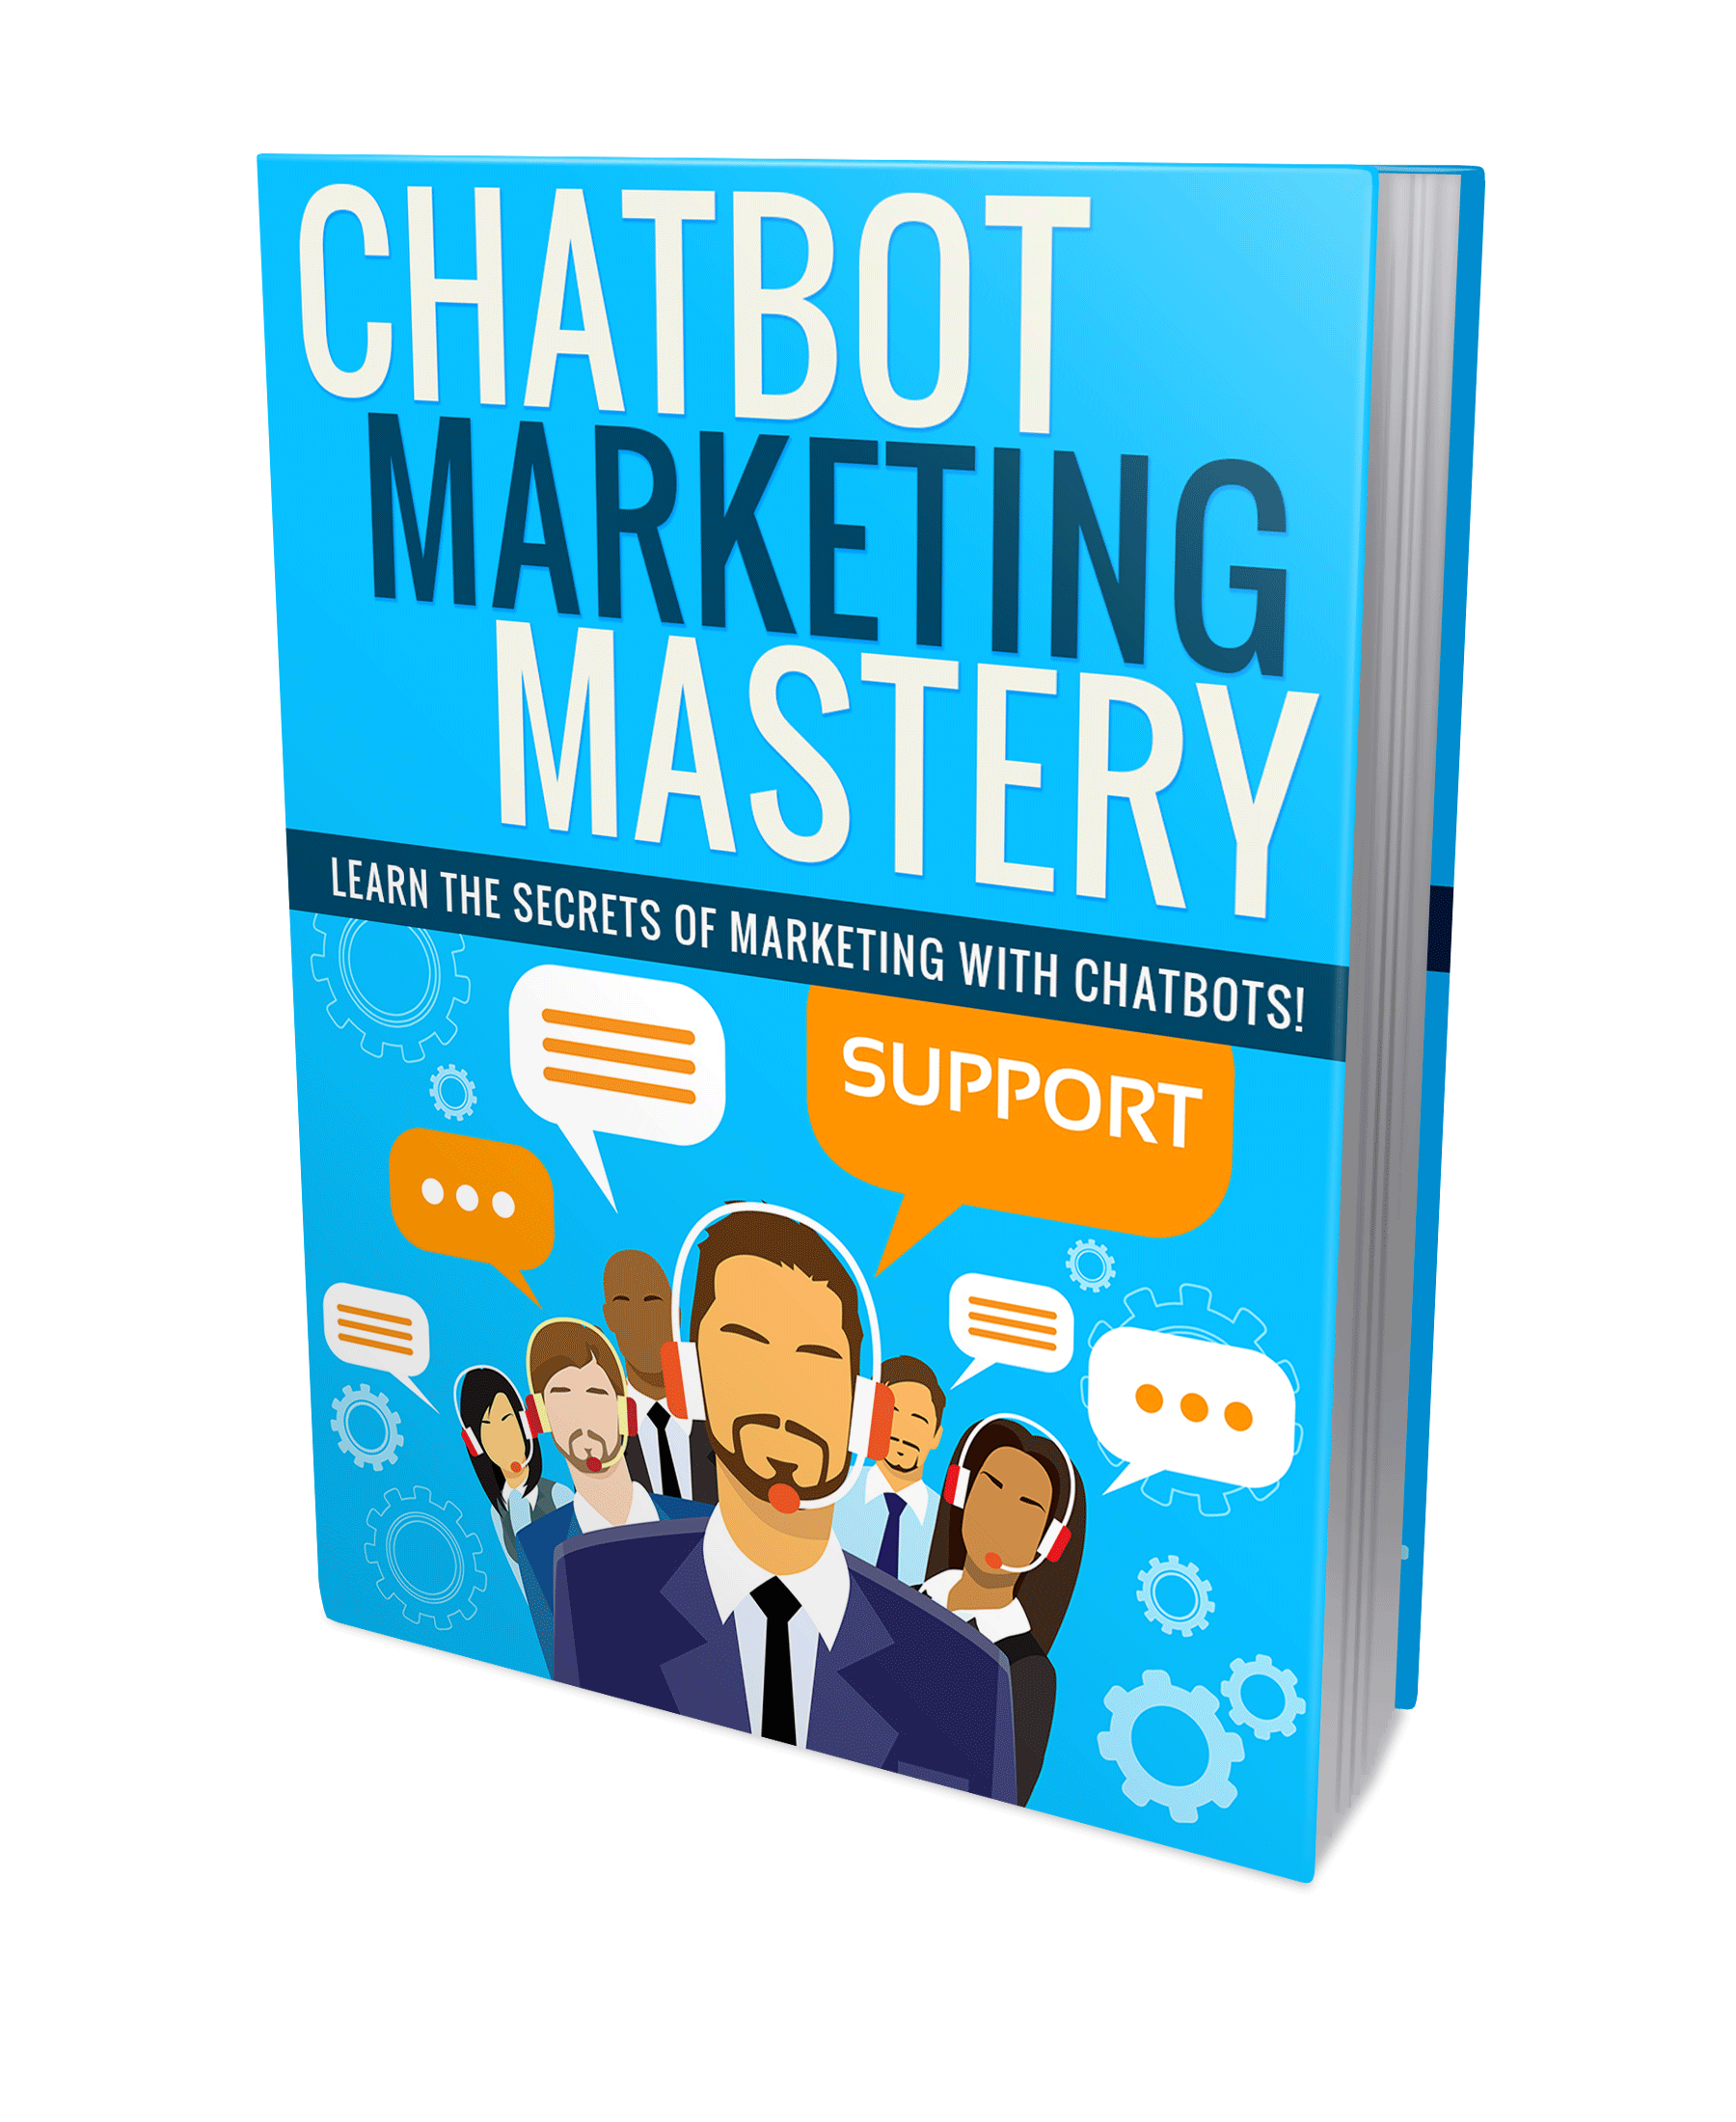 Chatbot Marketing Mastery your own custom chatbot without any programming knowledge